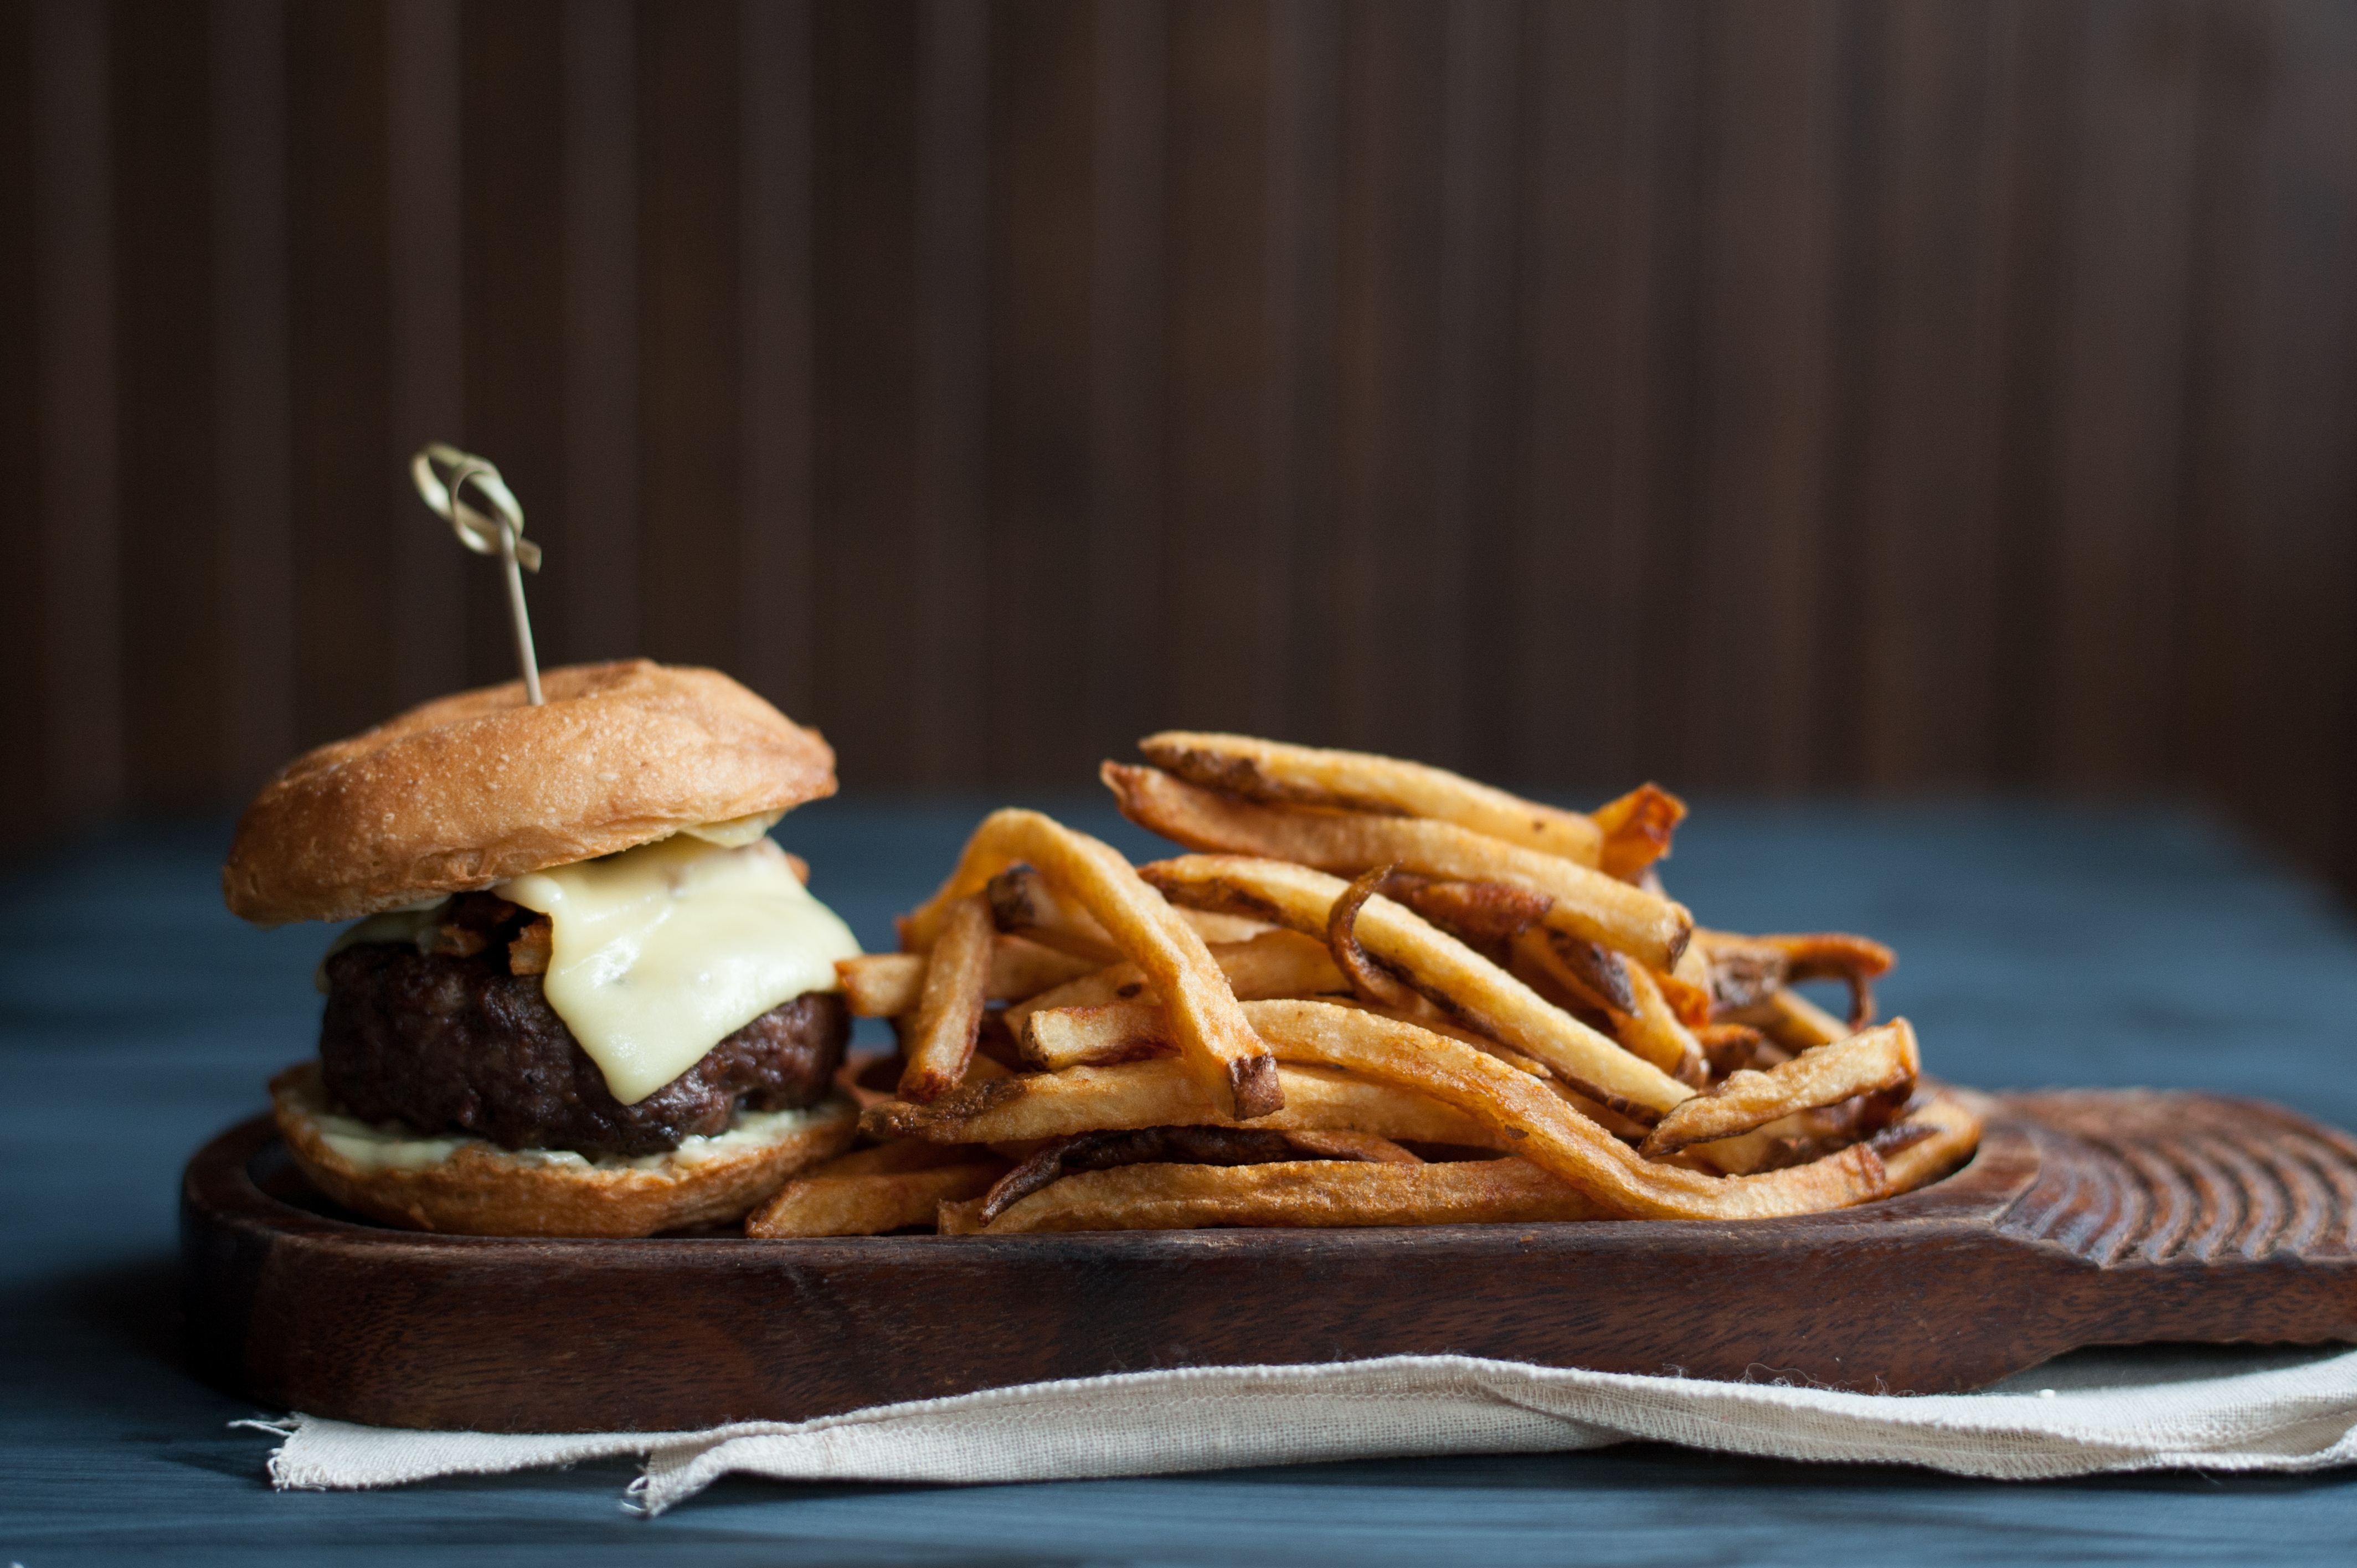 Capitol Cider's Burger and Frites; completely gluten-free. (Image: Capitol Cider)